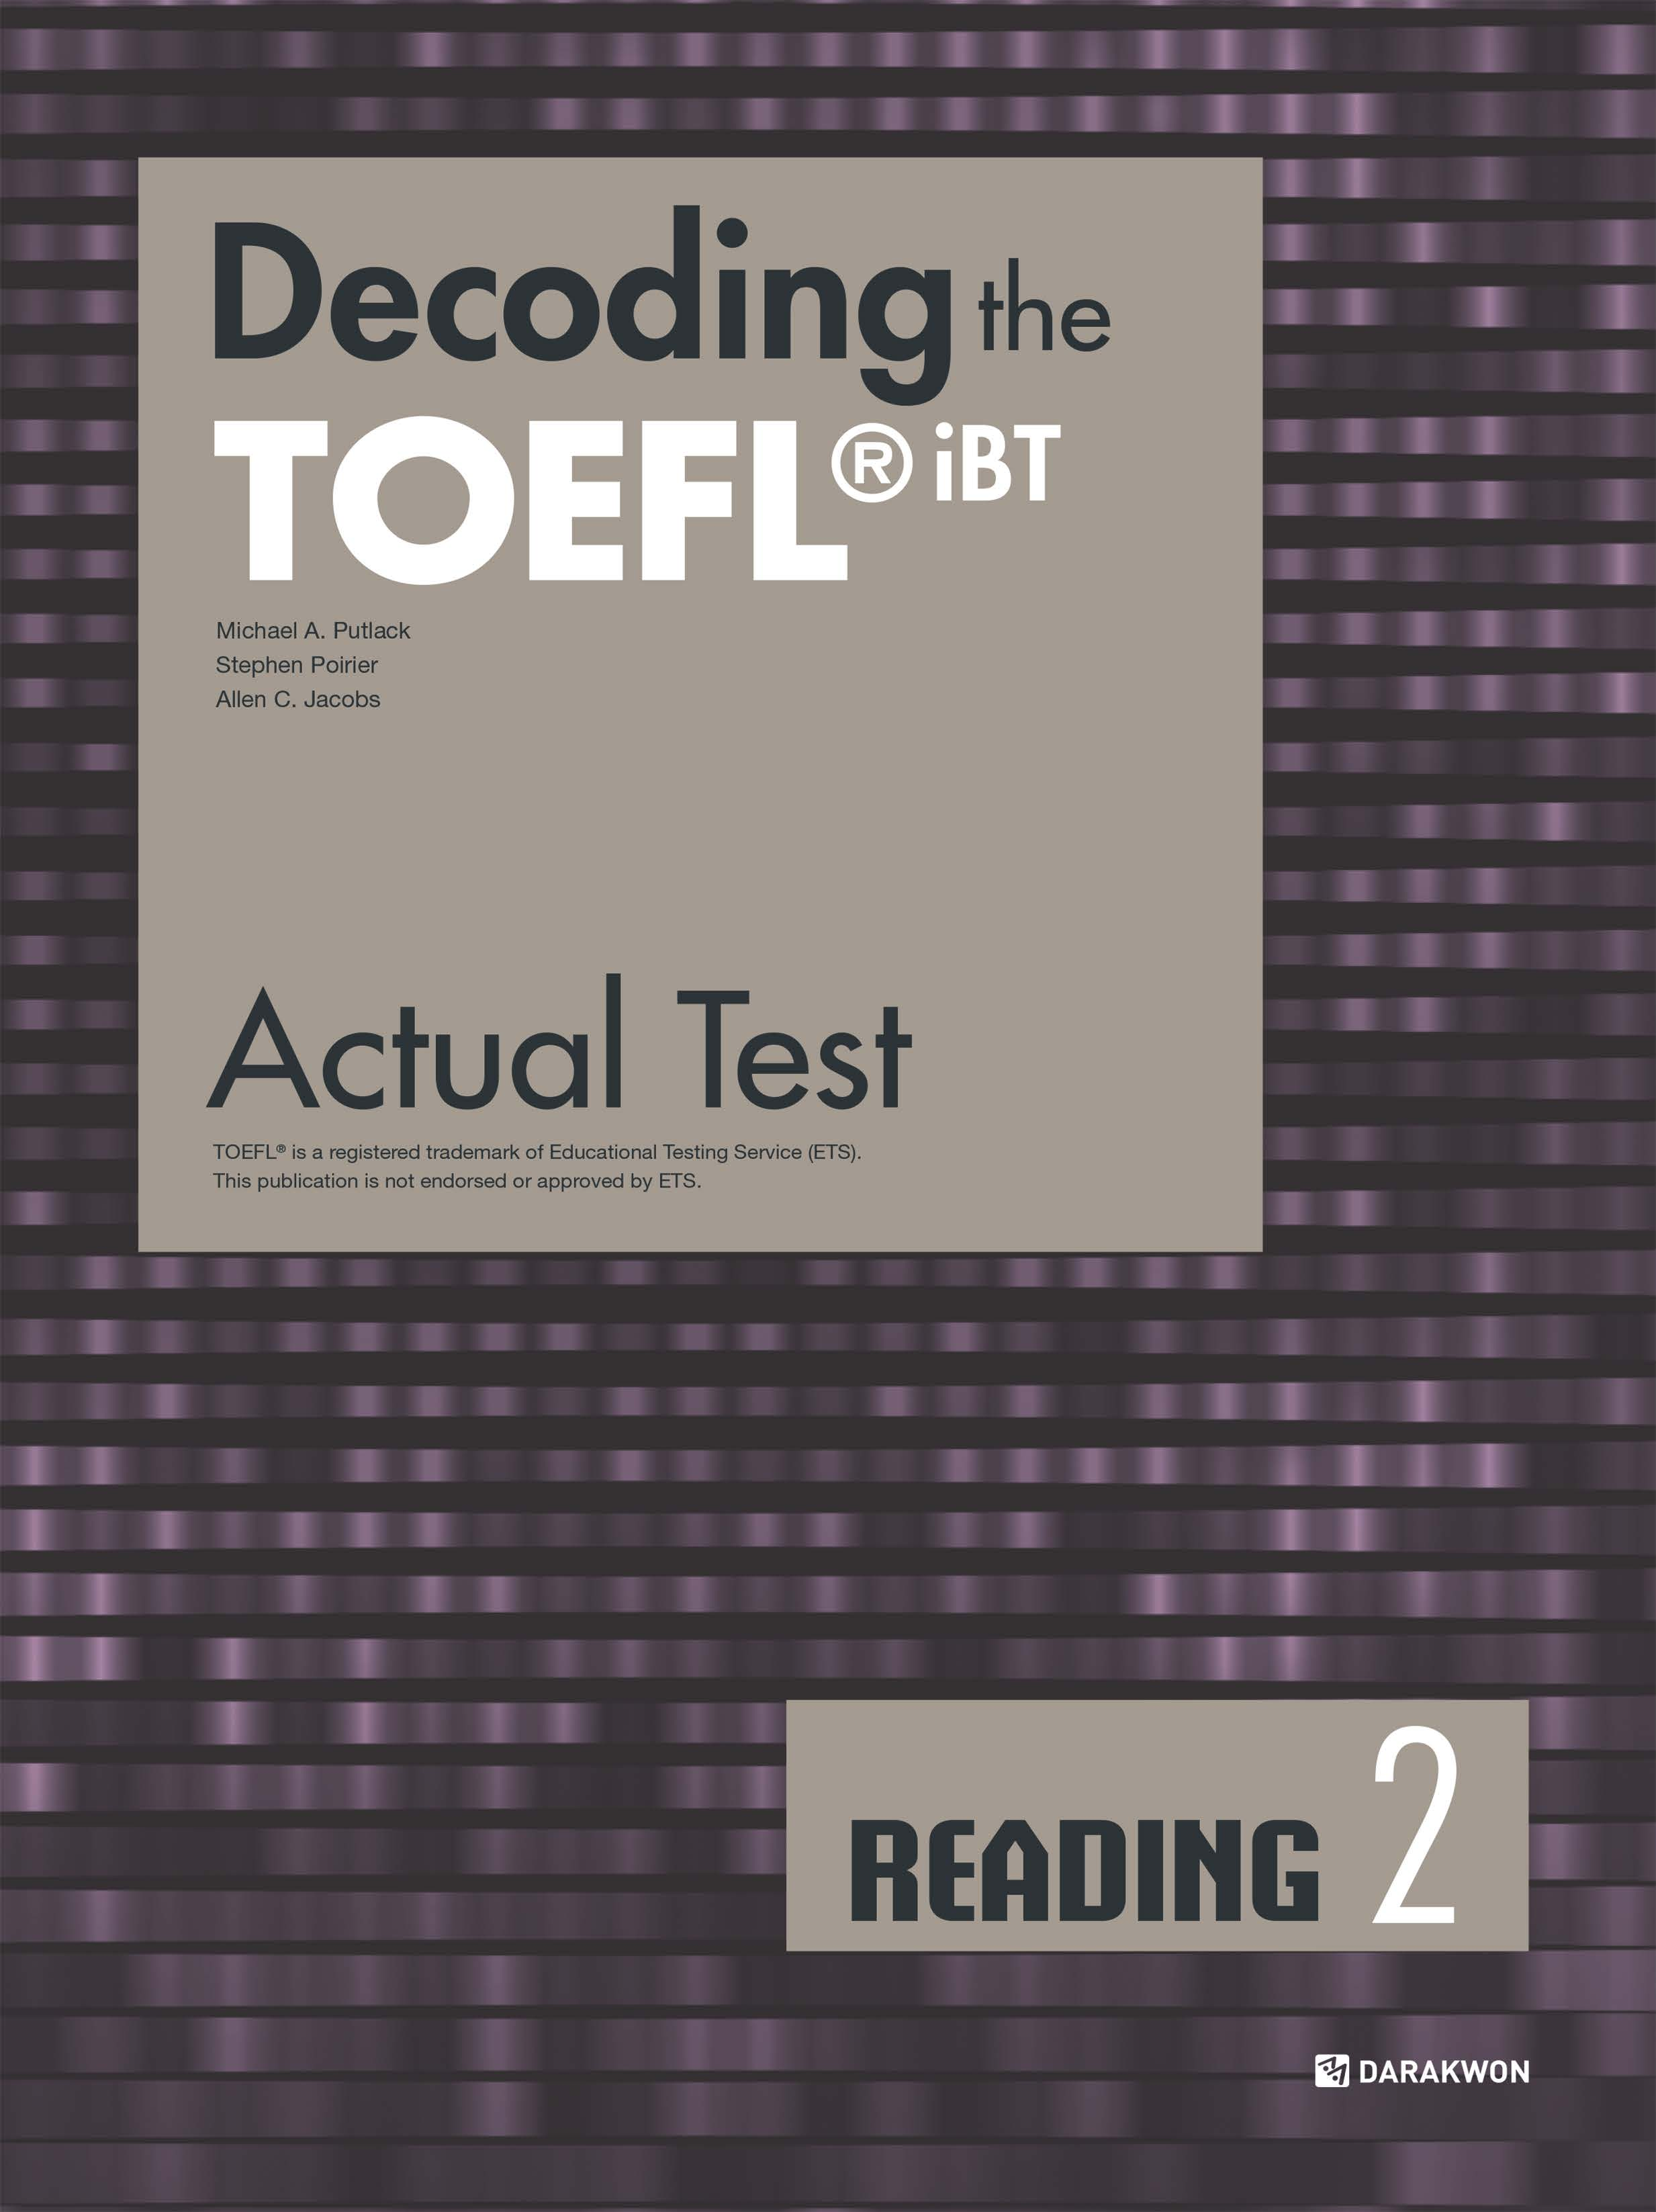 [Decoding the TOEFL iBT Actual Test] Decoding the TOEFL iBT Actual Test READING 2